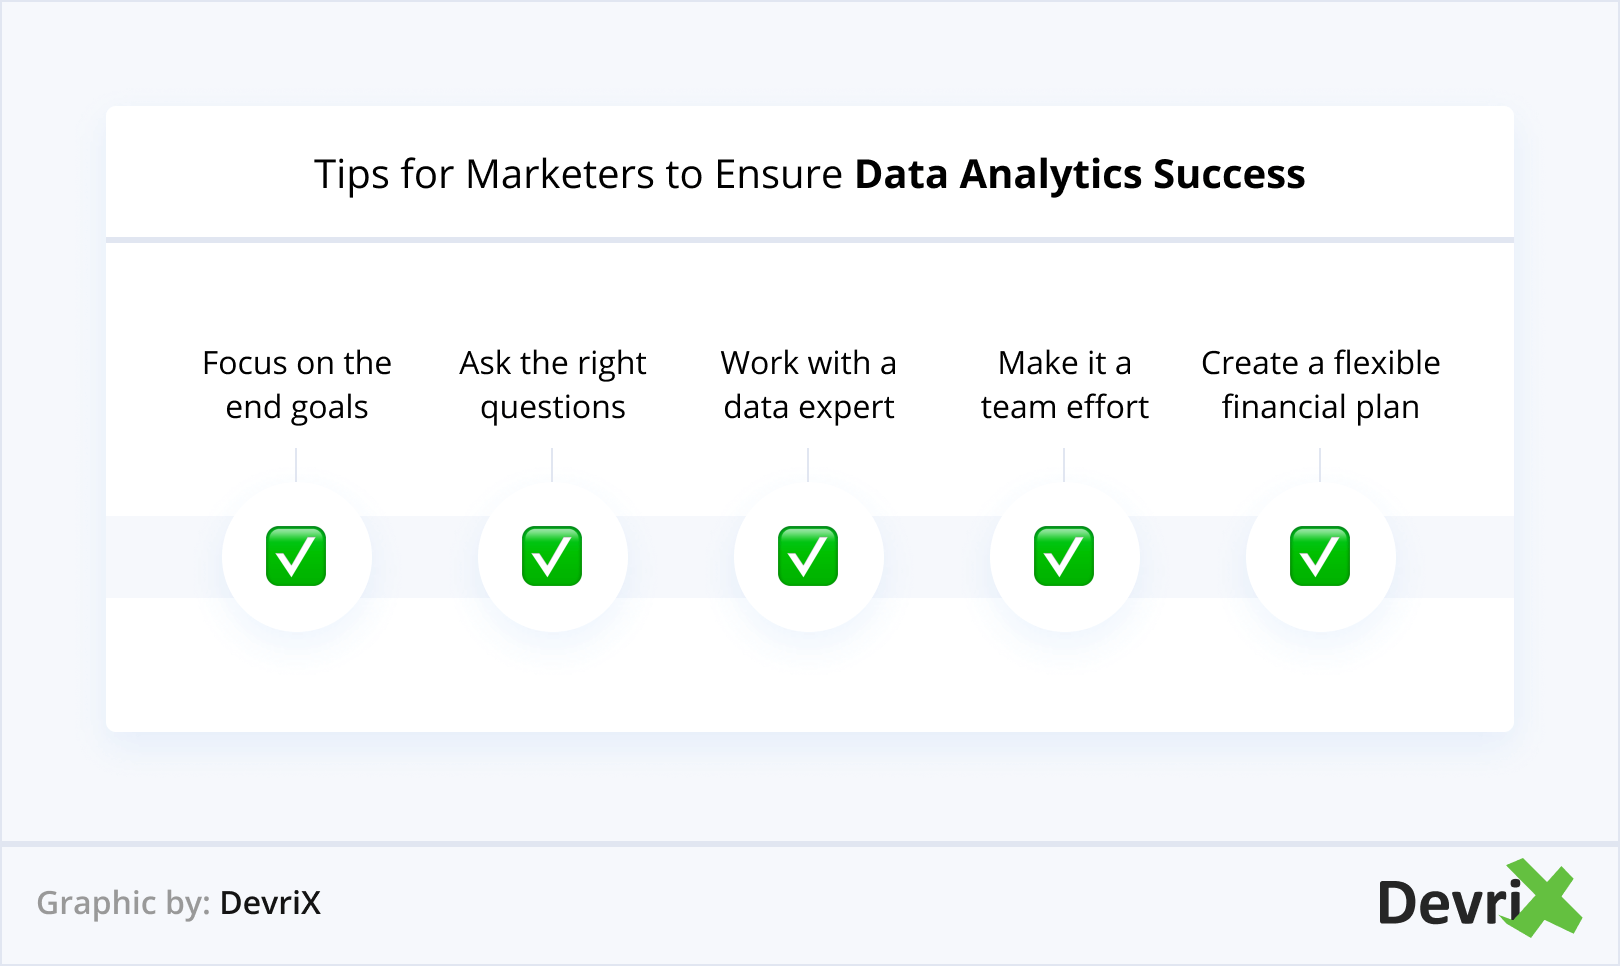 Tips for Marketers to Ensure Data Analytics Success